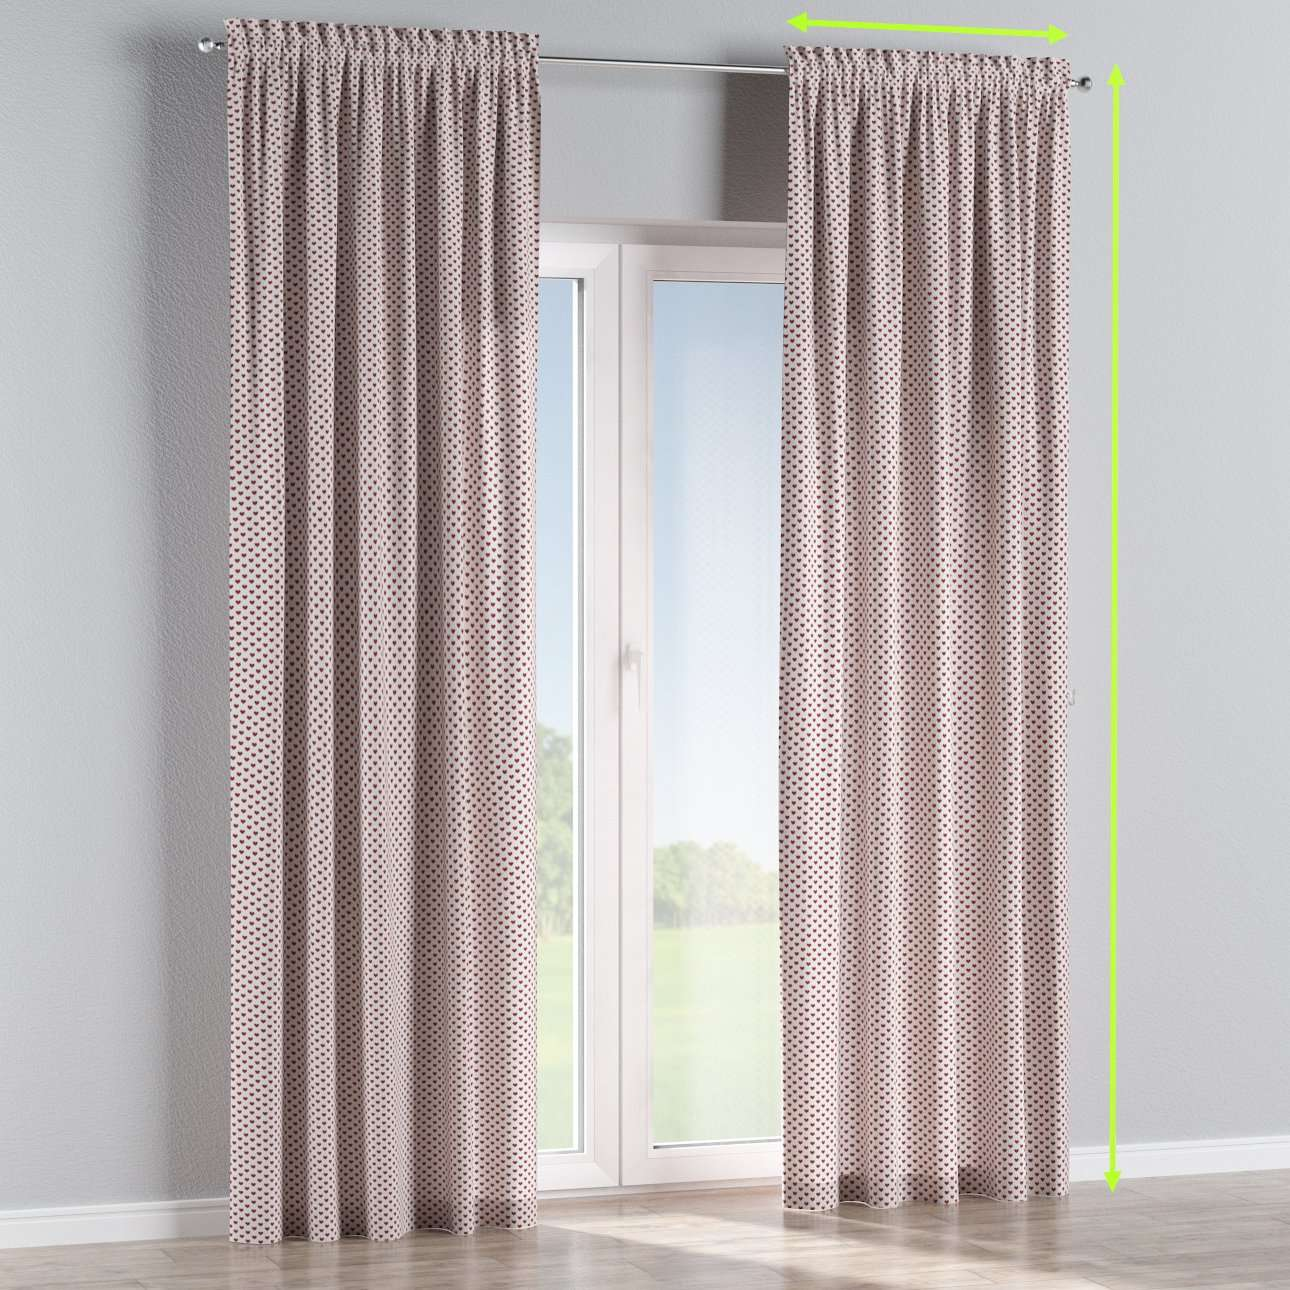 Slot and frill curtains in collection Nordic, fabric: 630-04